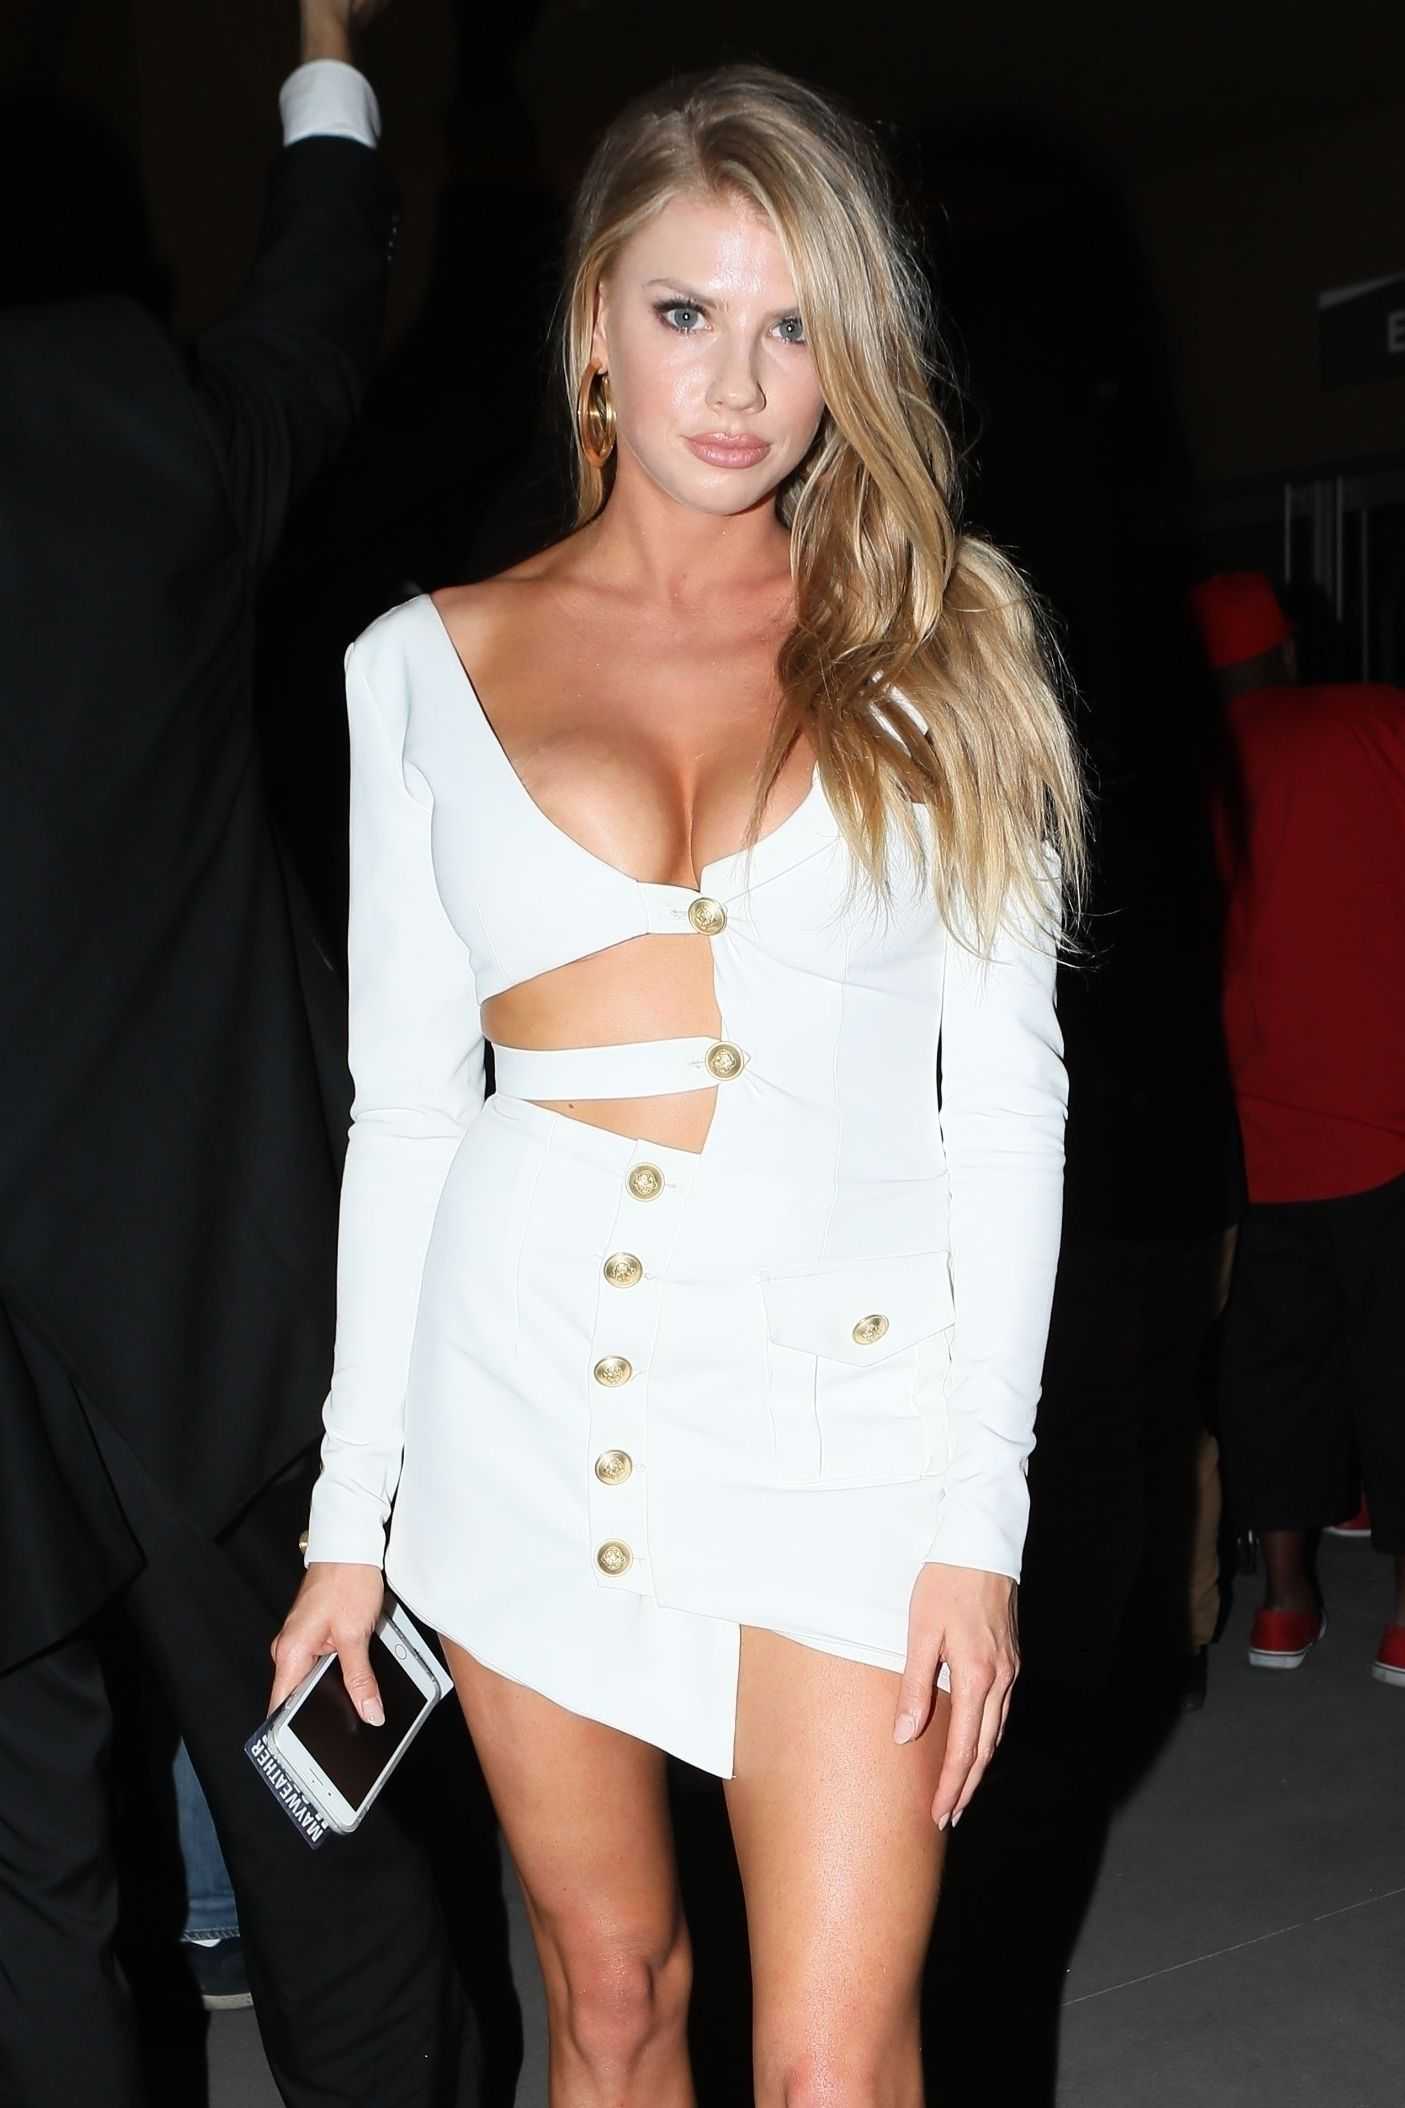 she leaves the t mobile arena in las vegas after the epic conor mcgregor floyd mayweather boxing match the 23 year old busty model shows off her